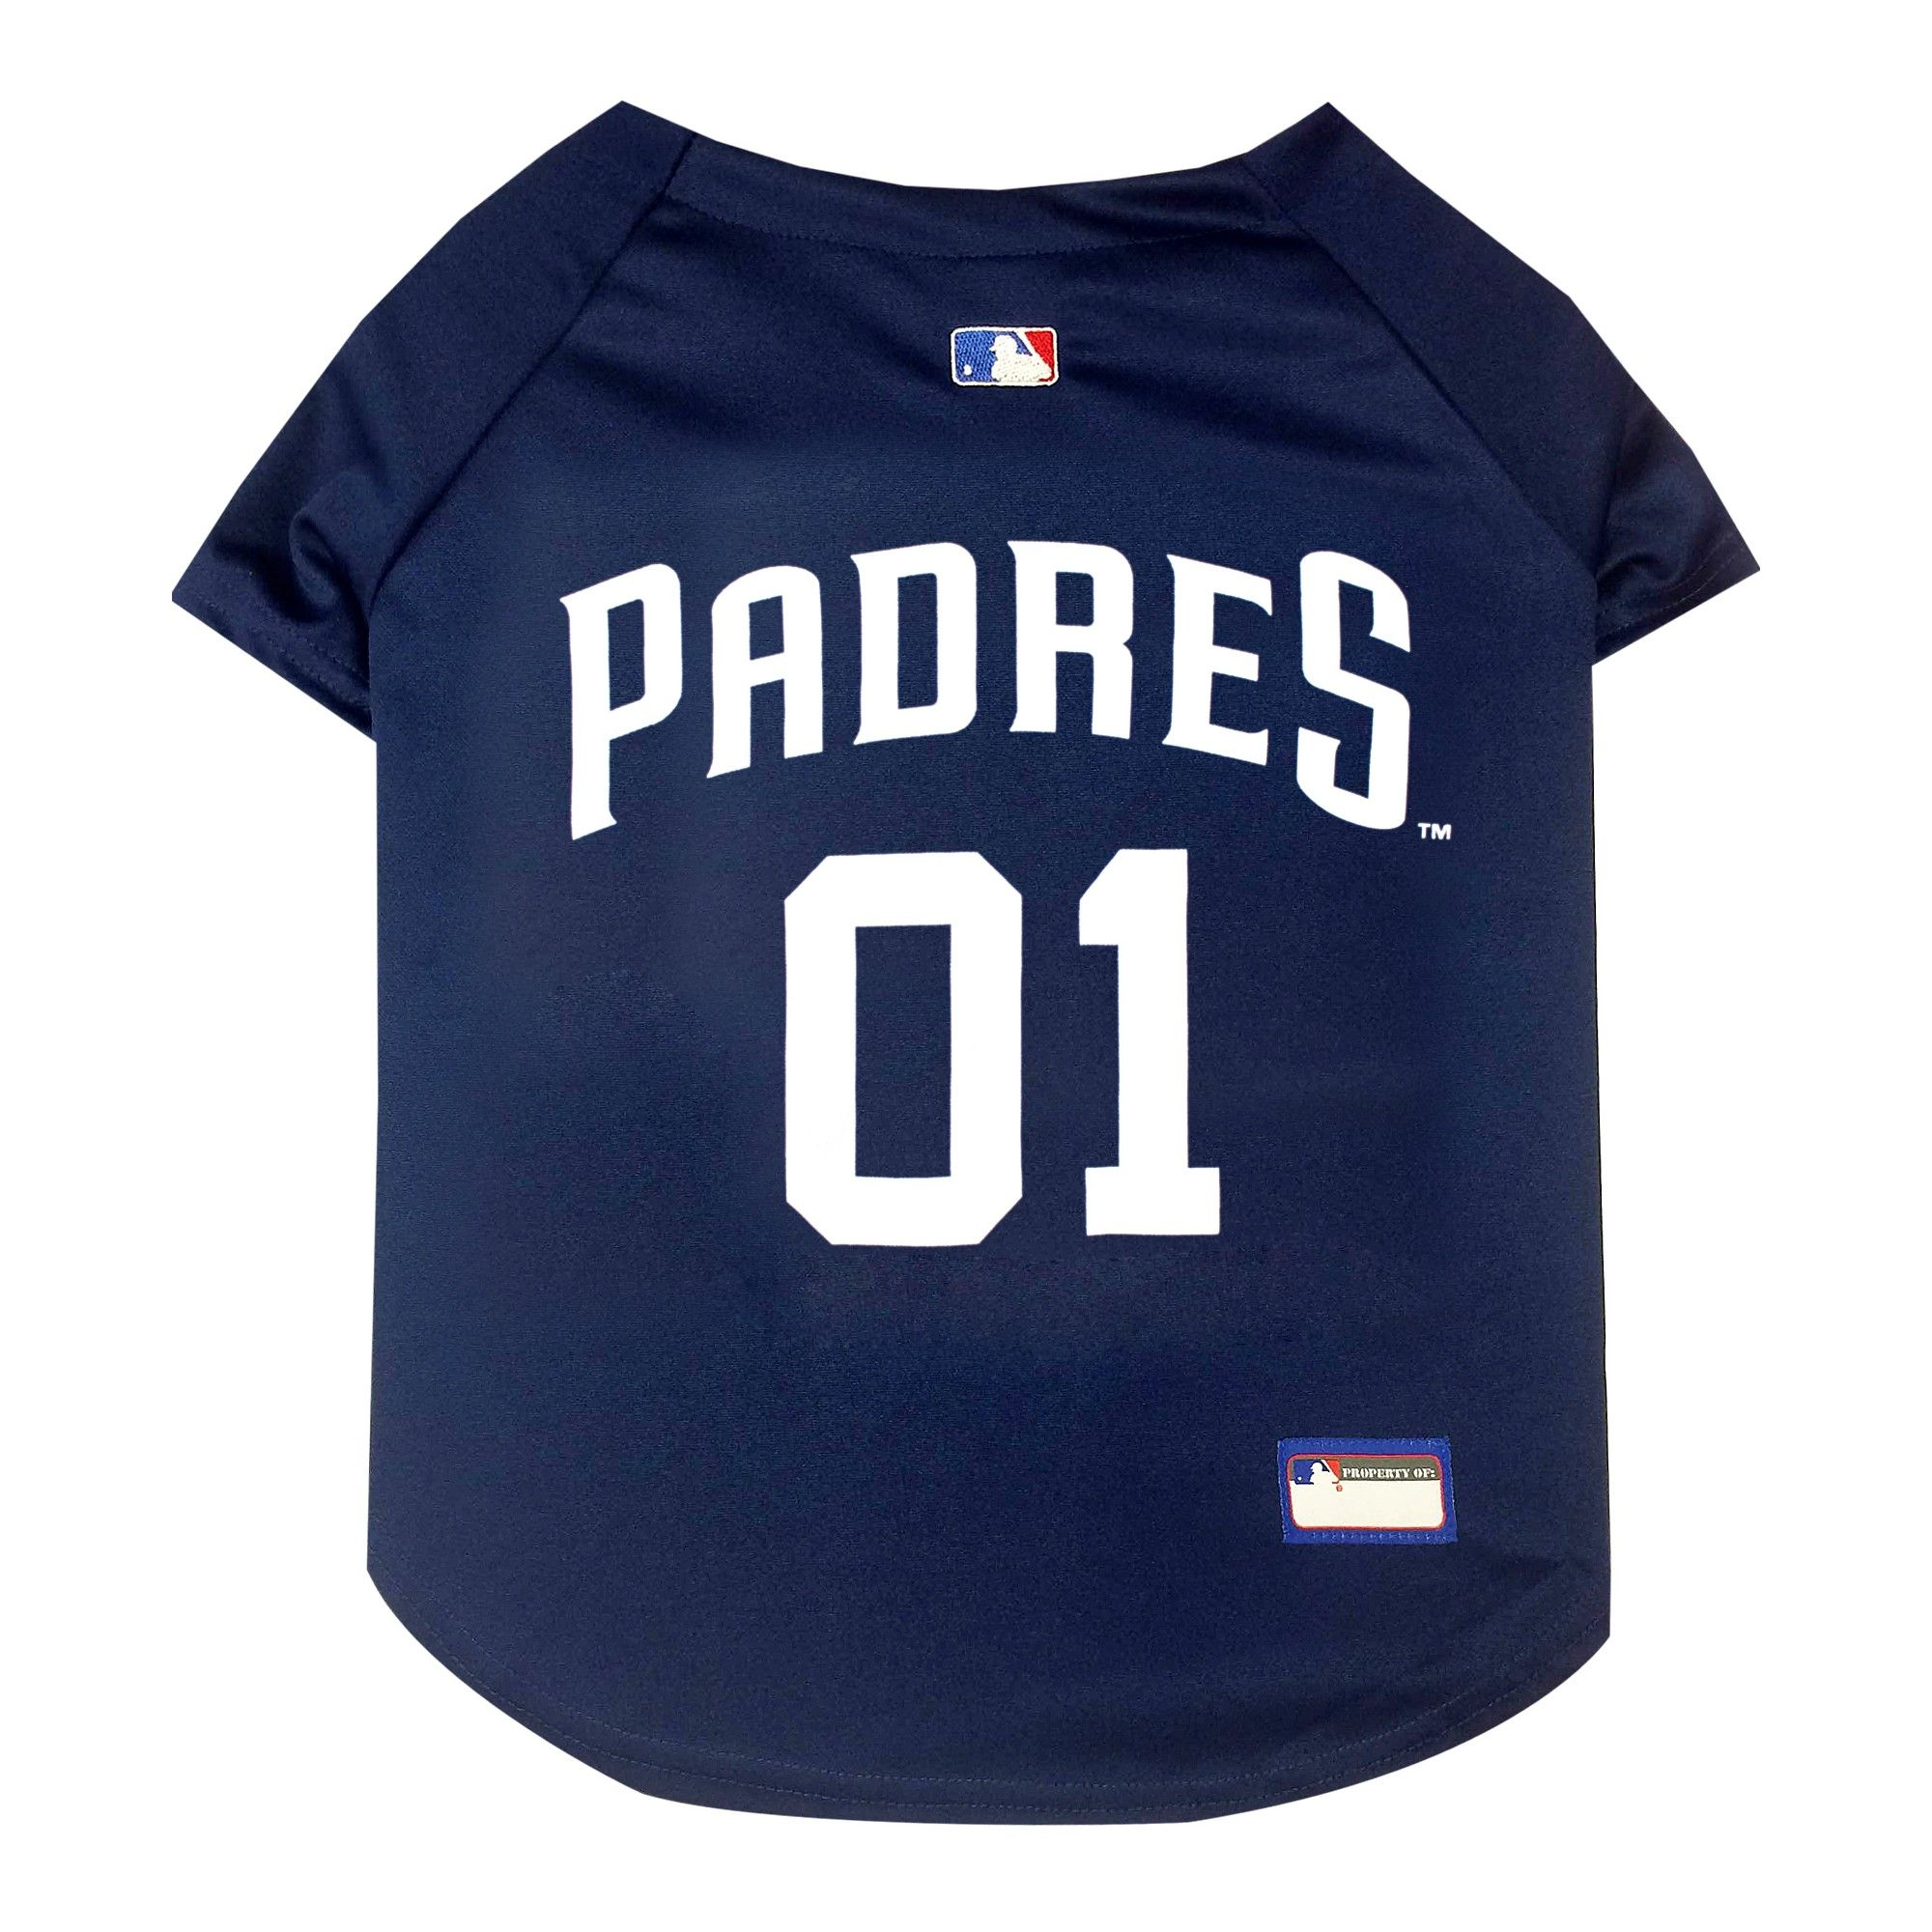 64788e0be San Diego Padres Pets First Pet Baseball Jersey - Navy Xxl, Multicolored